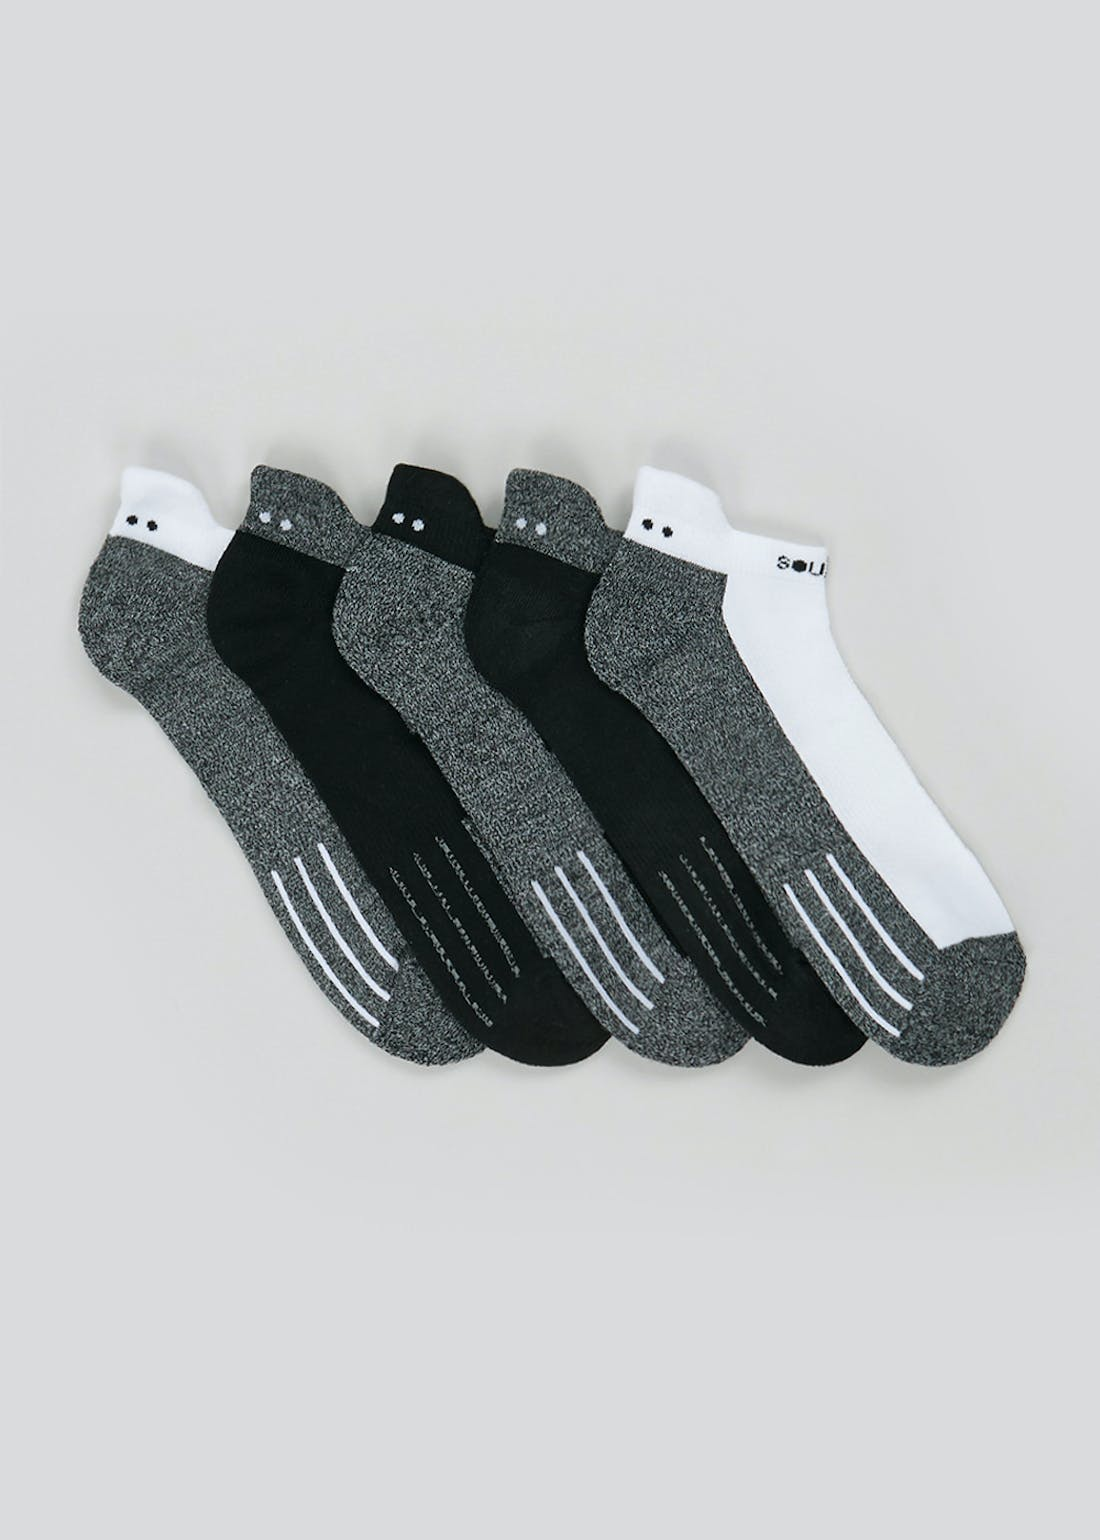 Souluxe 5 Pack Sports Socks